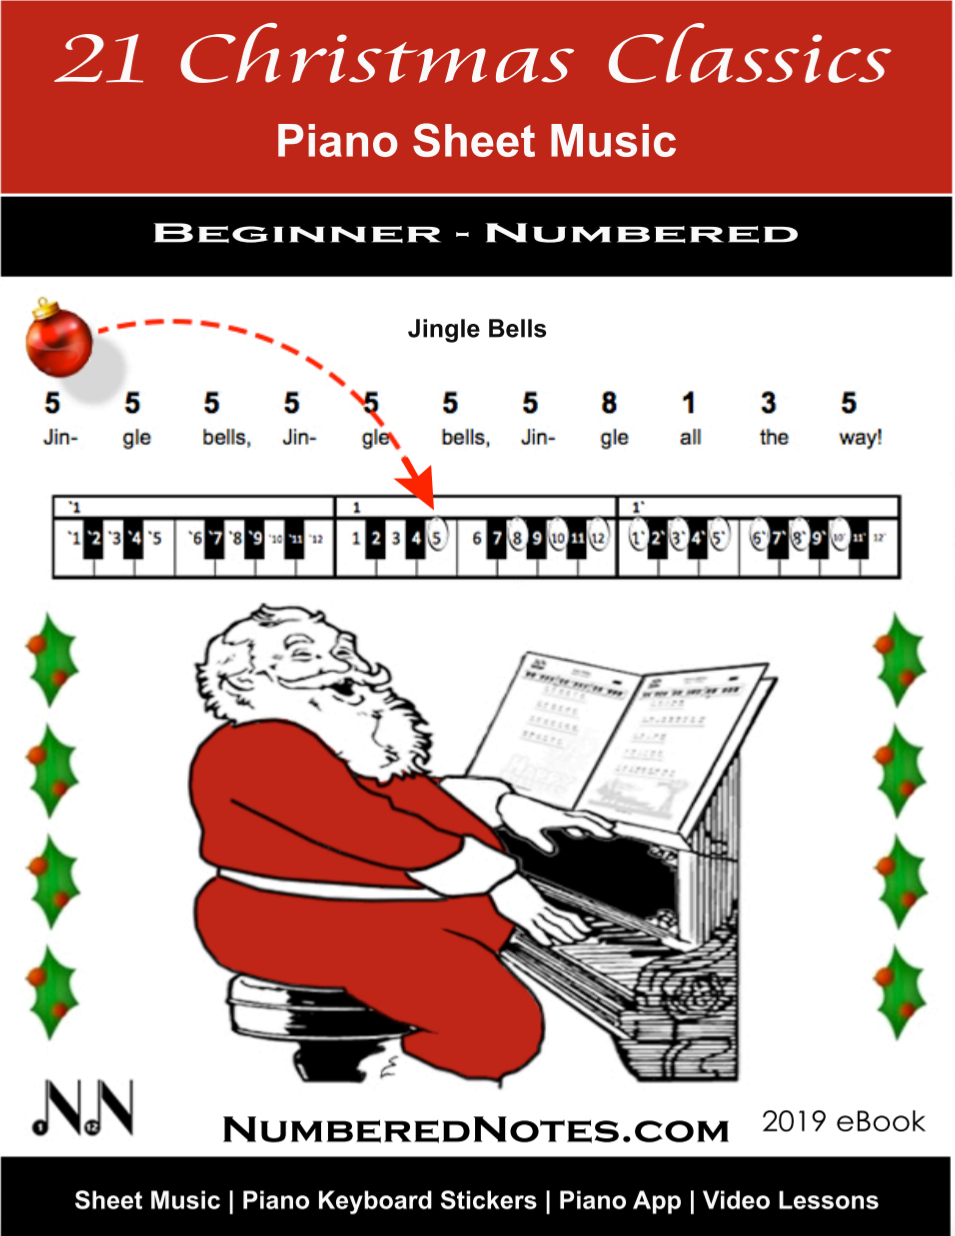 Numbered-Notes-2019-Christmas-eBook-Cover